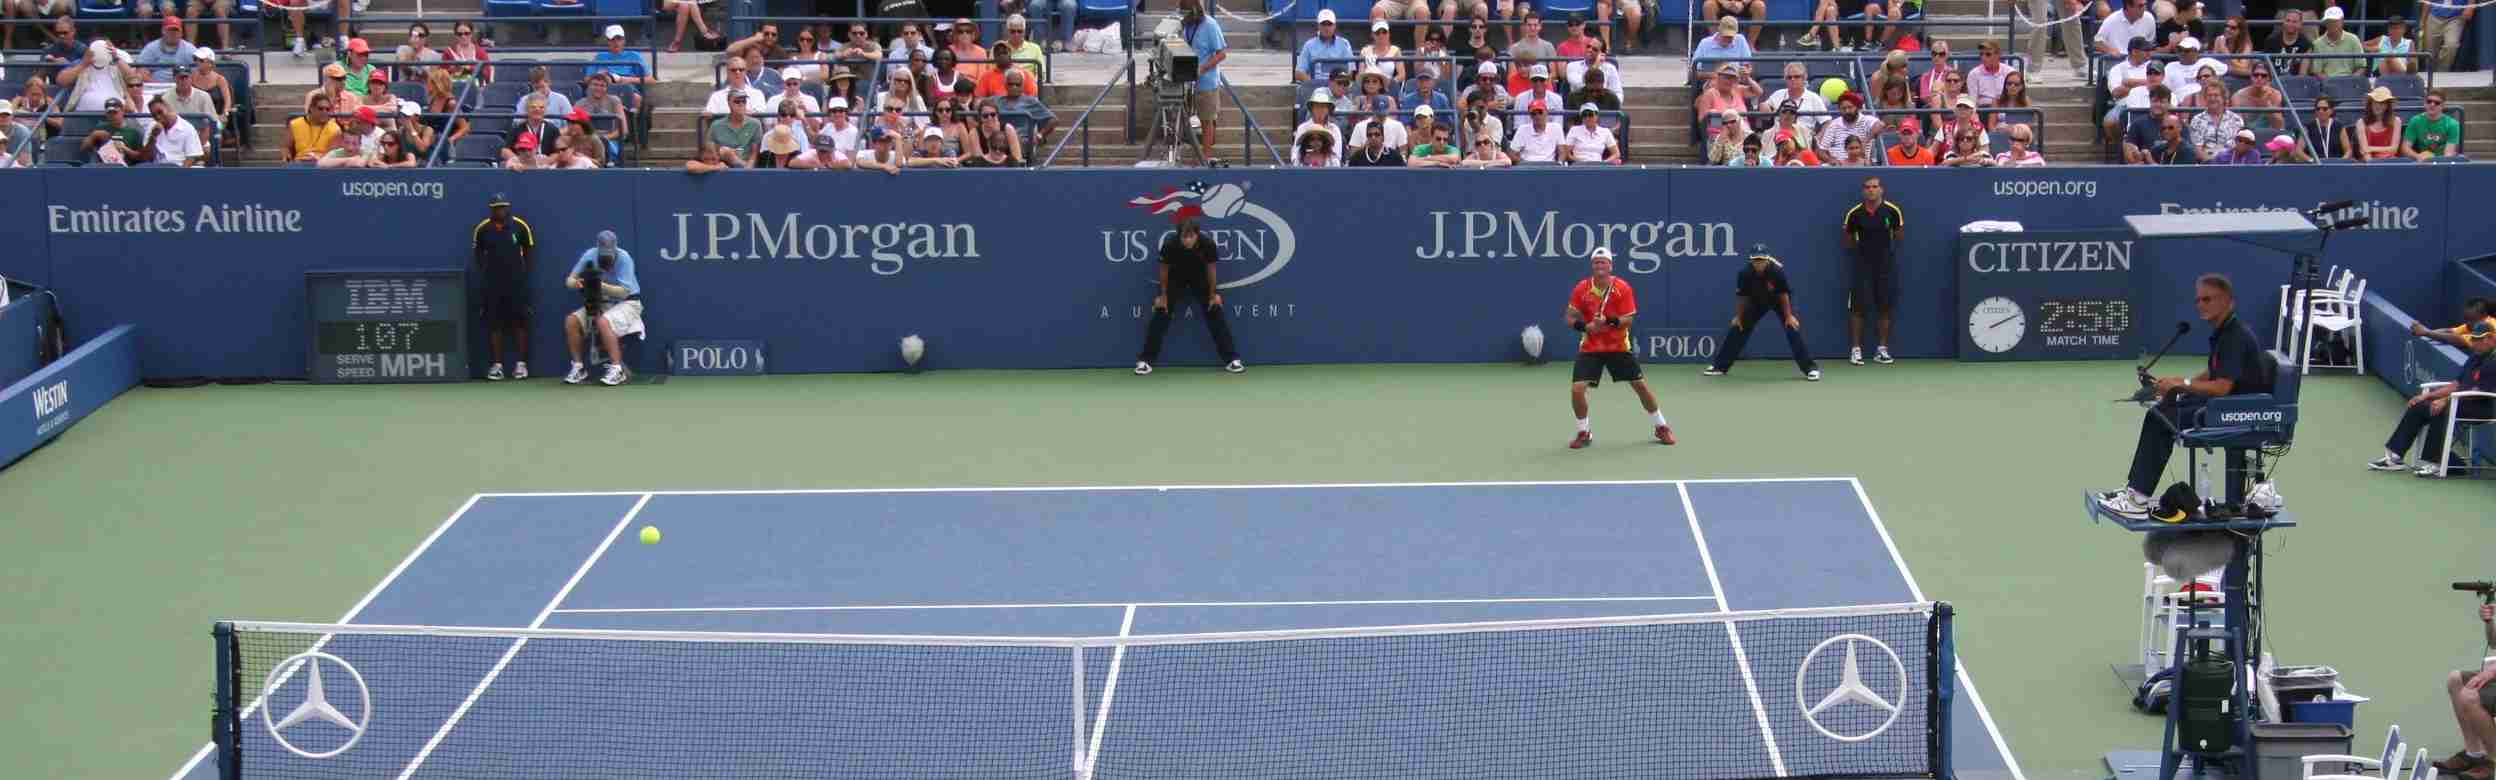 spg moments us open